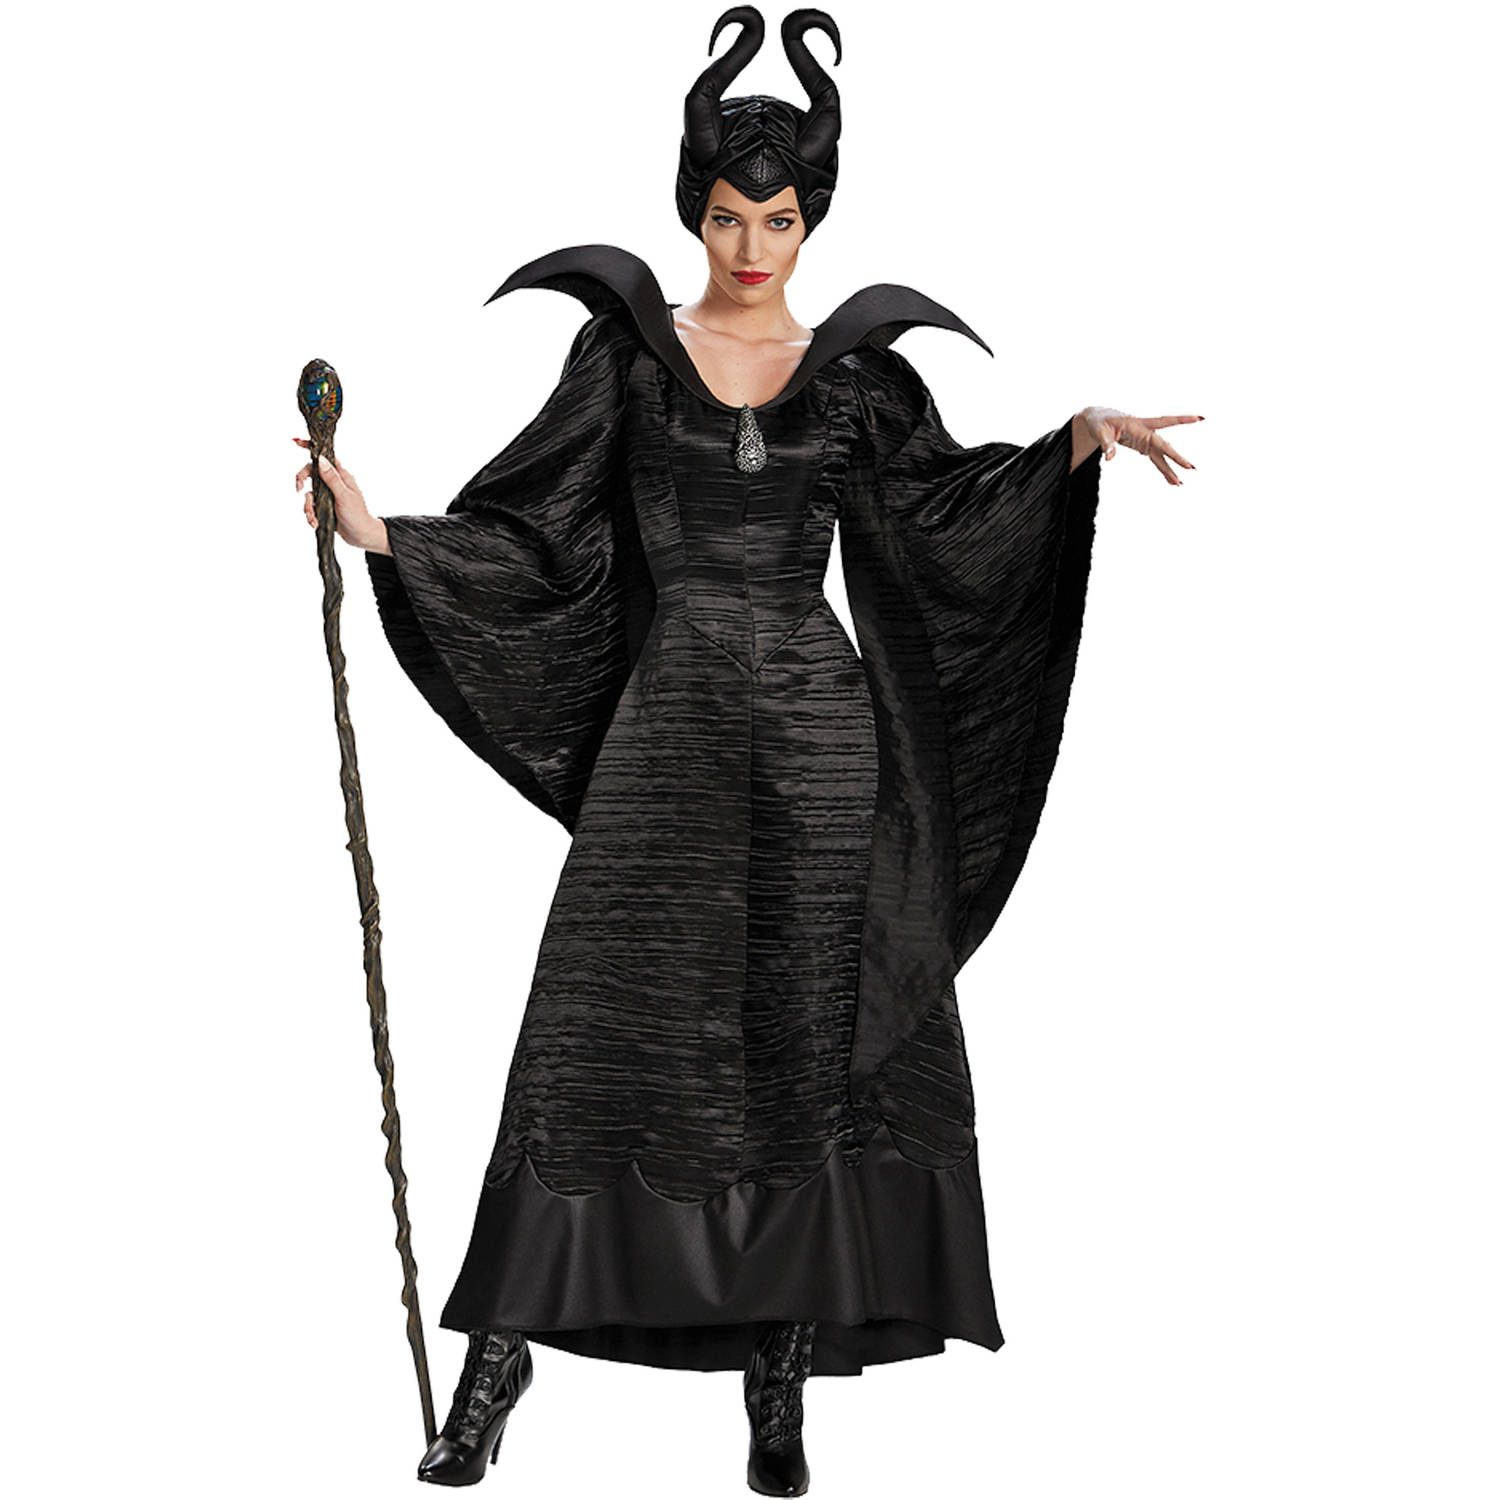 Black Maleficent Christening Women's Adult Halloween Costume